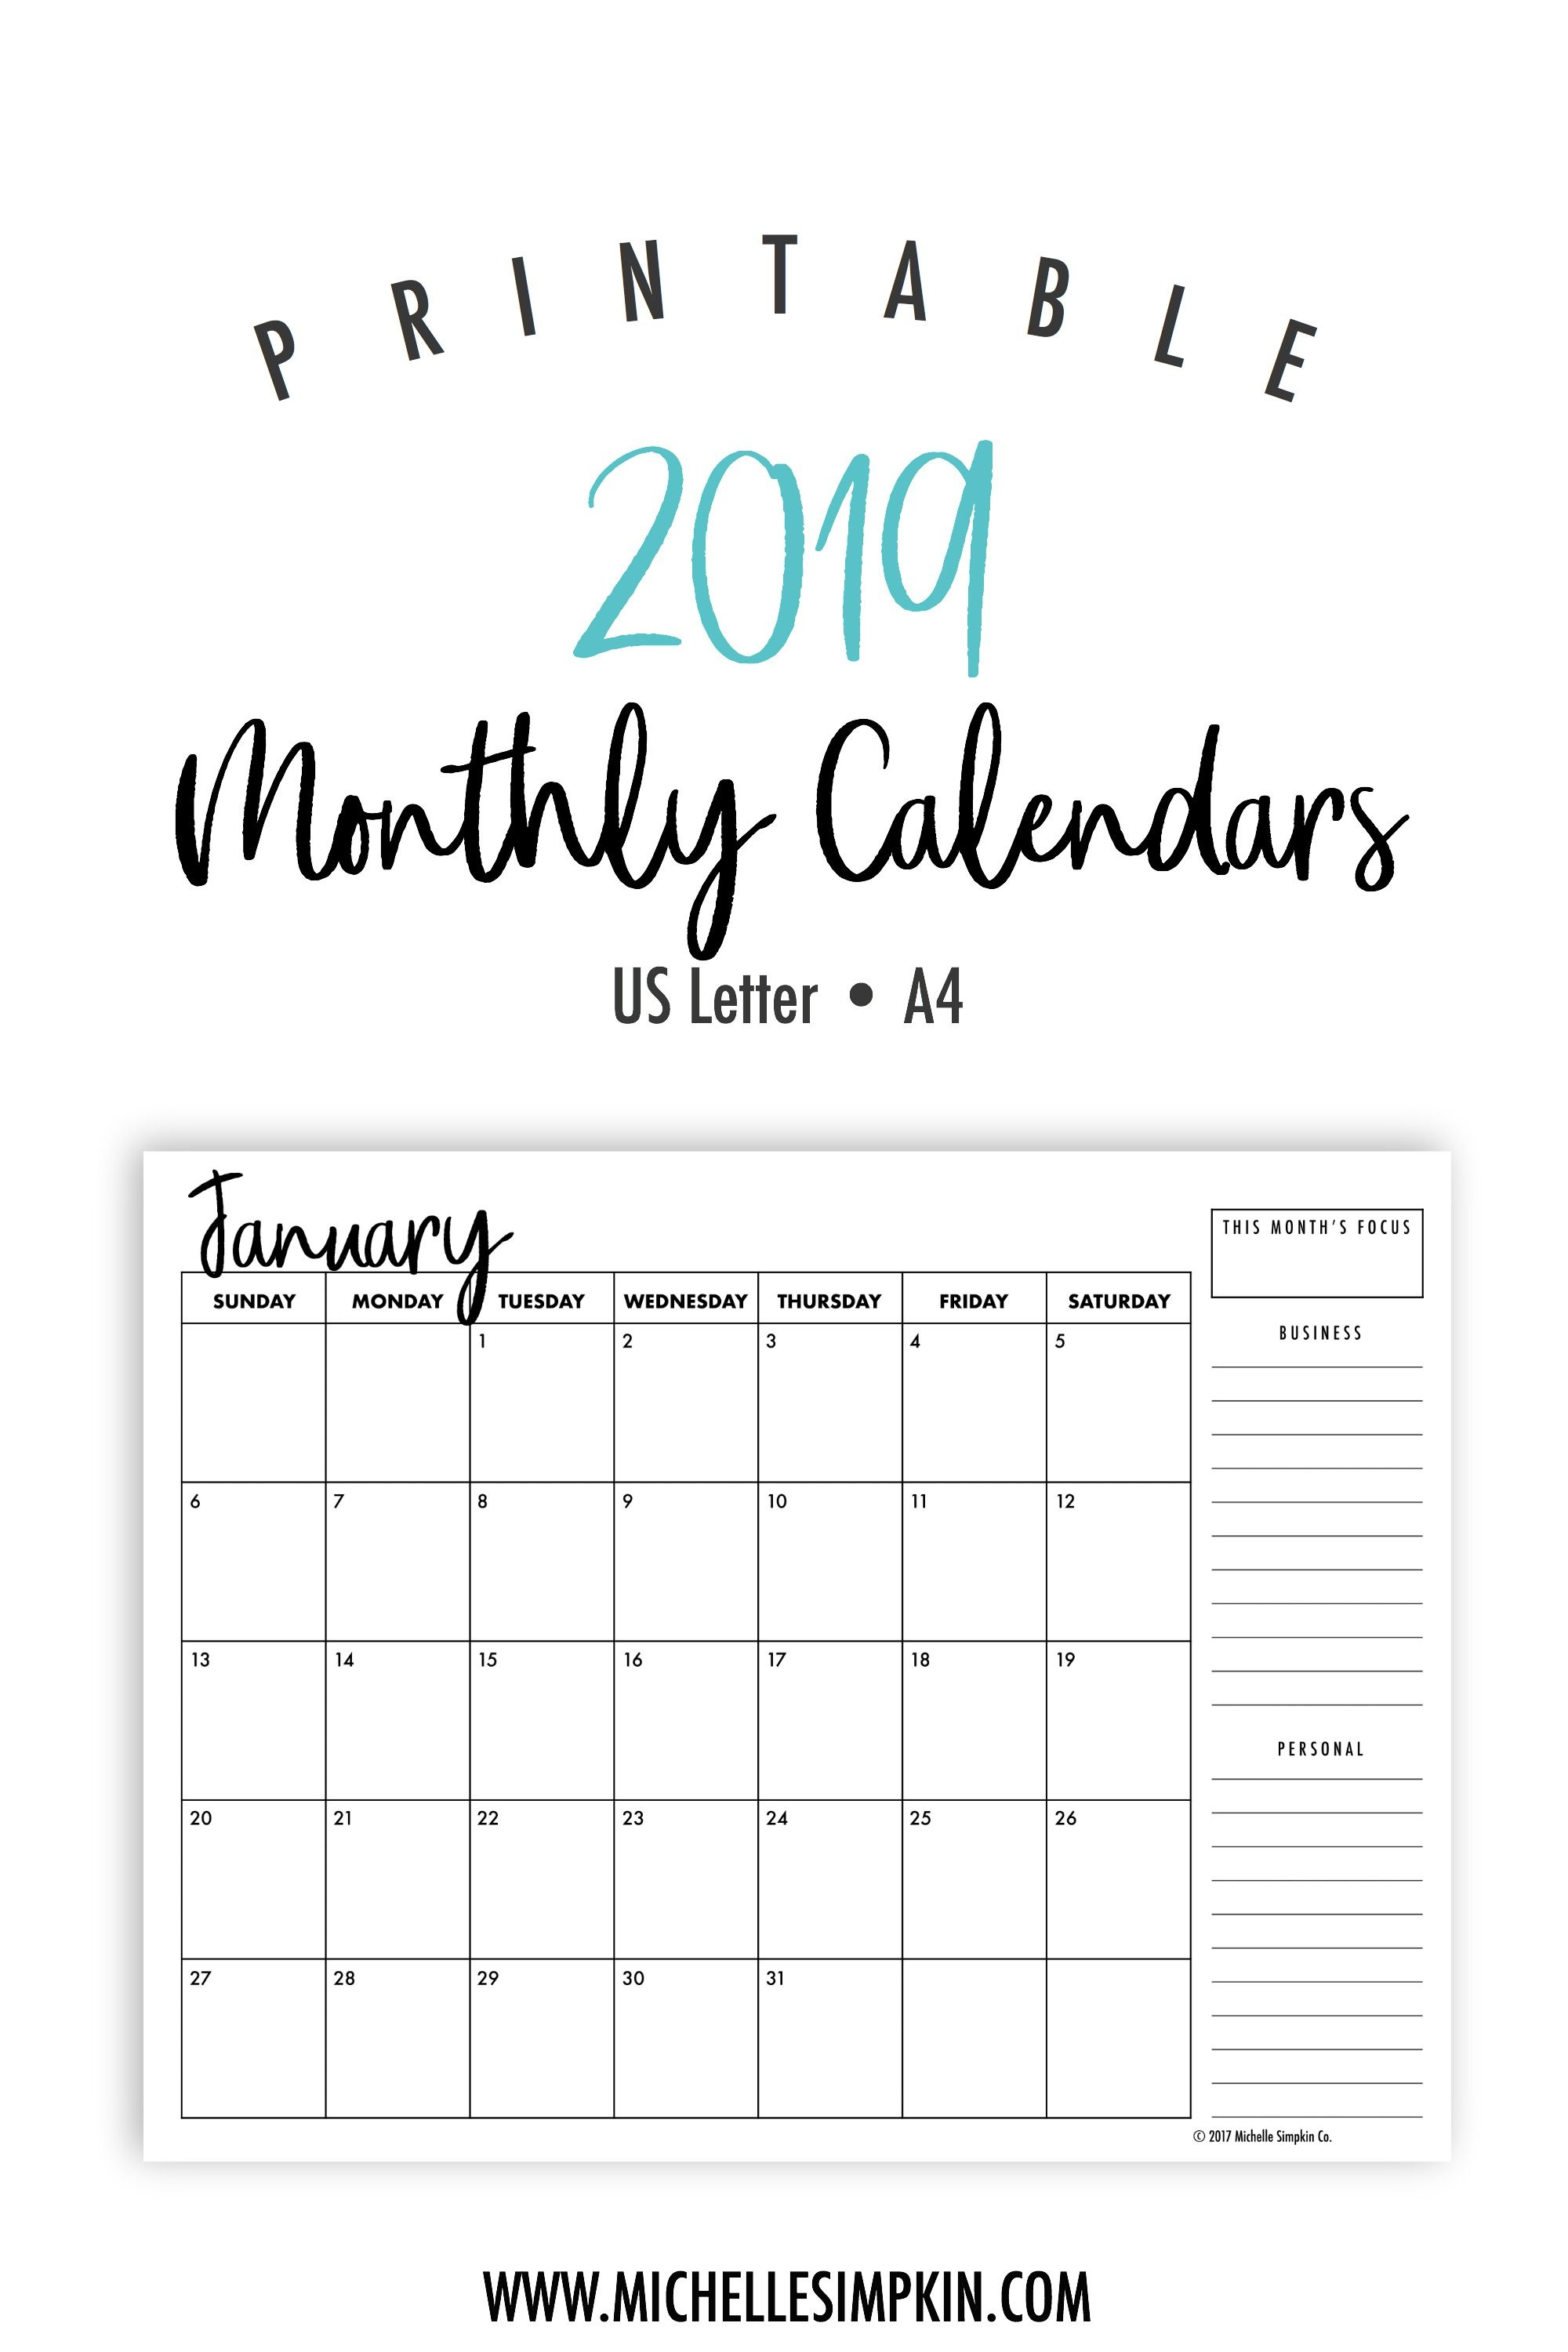 Half Year Calendar 2019 With Printable Monthly Calendars Landscape US Letter A4